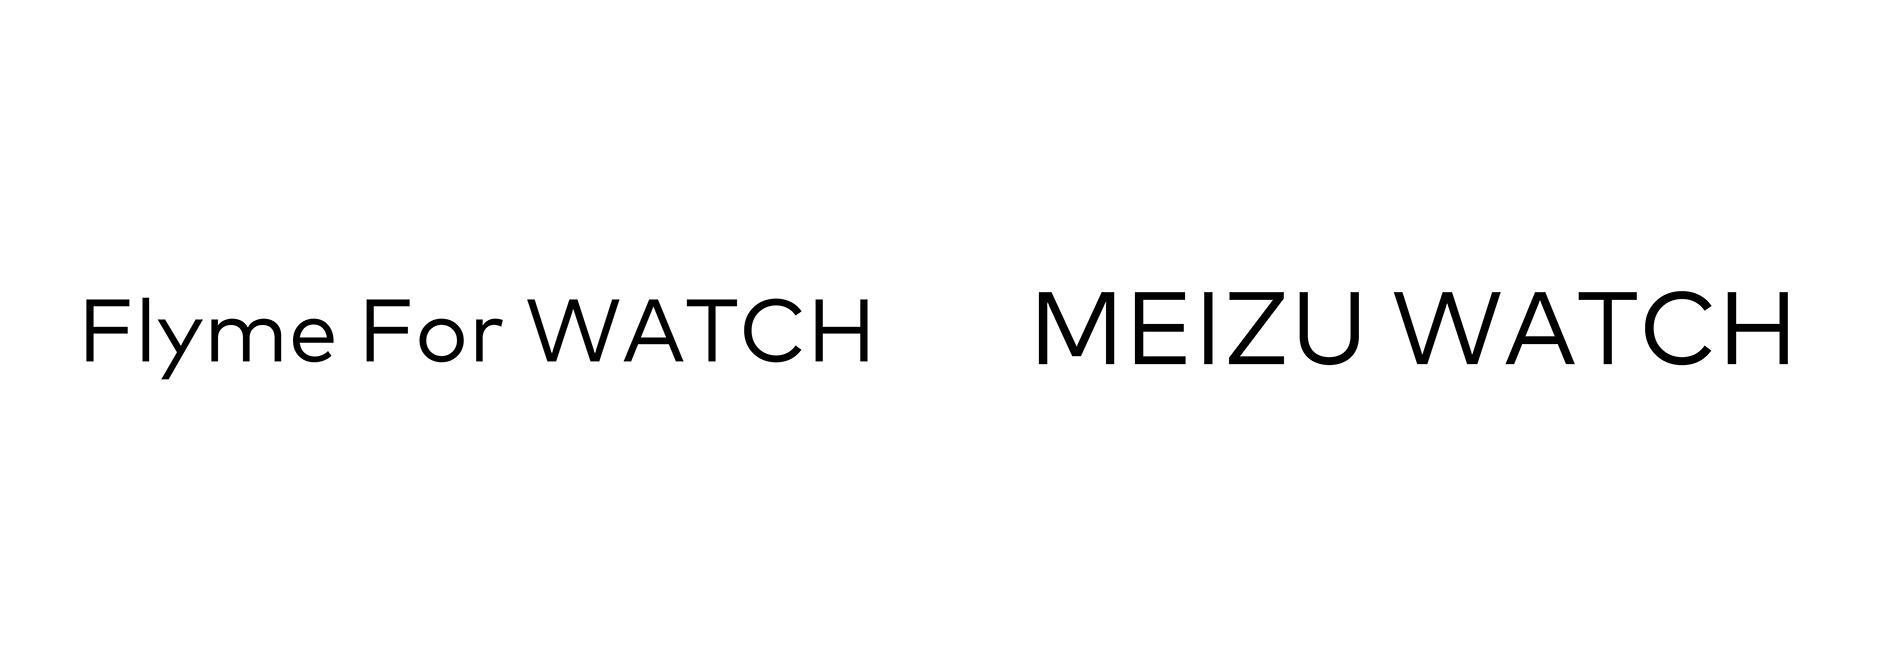 Meizuが「Flyme For WATCH」と「MEIZU WATCH」の商標を出願